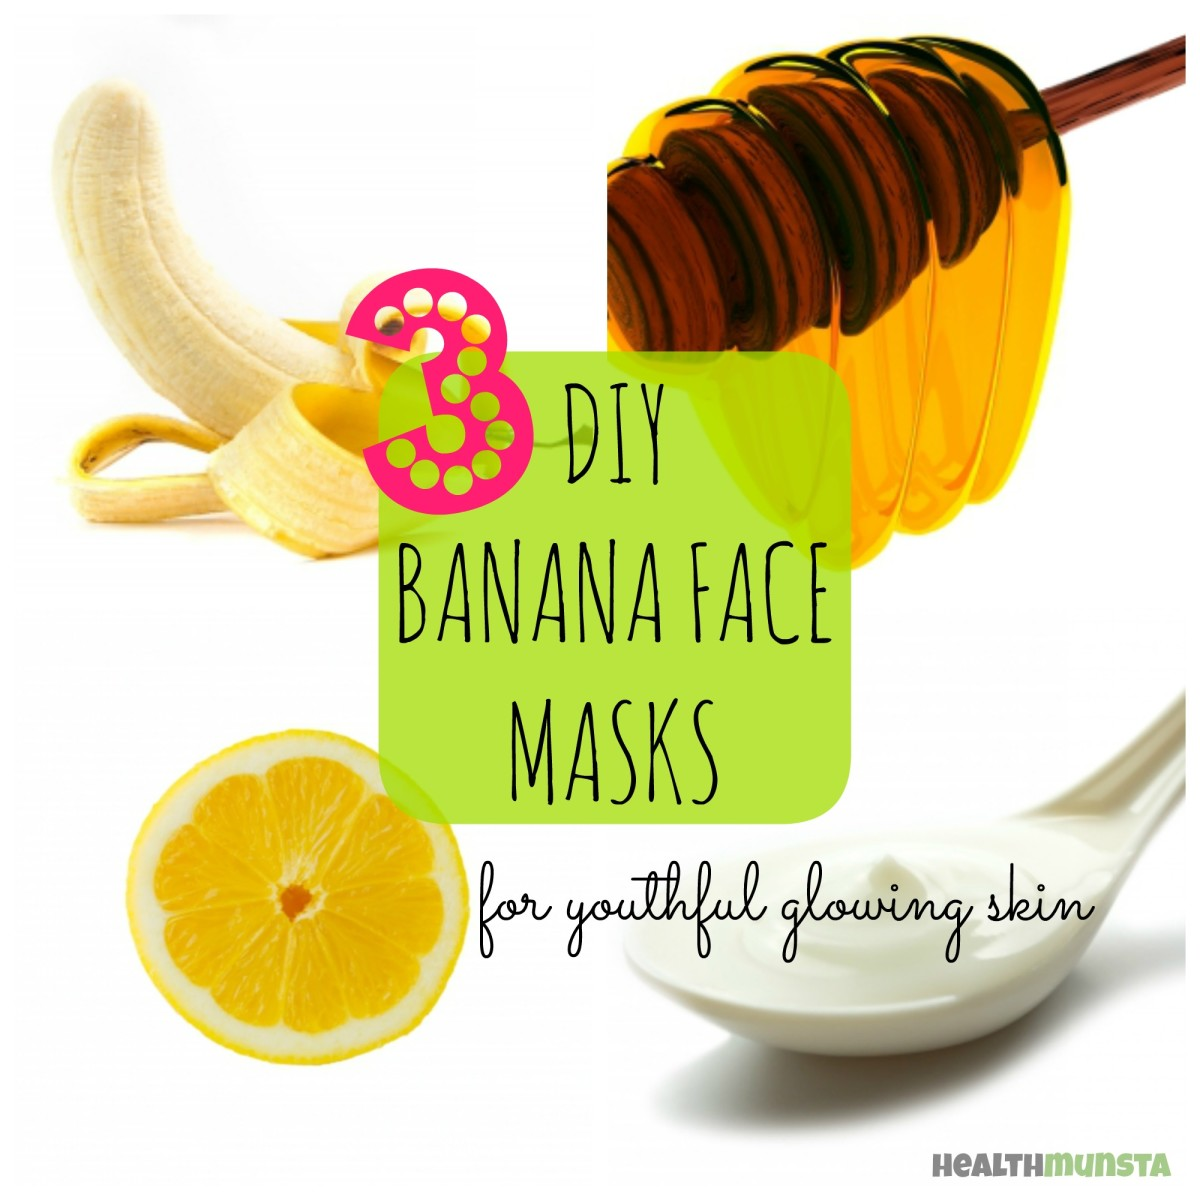 For glowing youthful skin, try these easy DIY banana face masks to make at home!